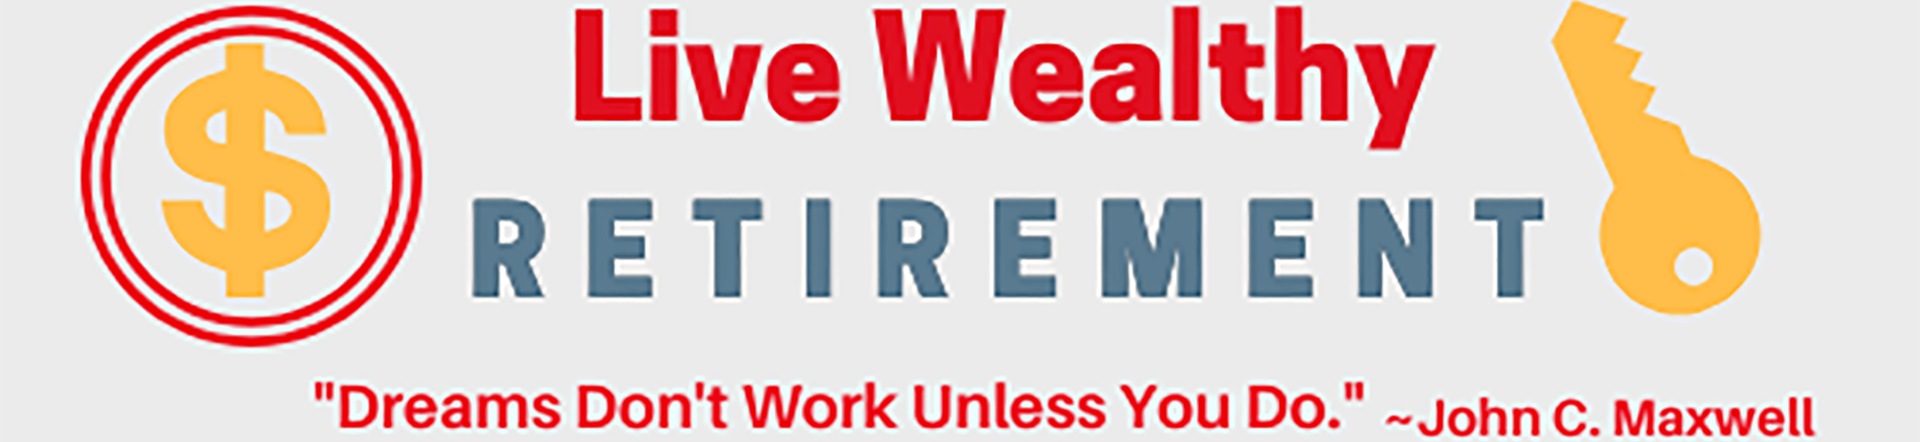 Live Wealthy Retirement